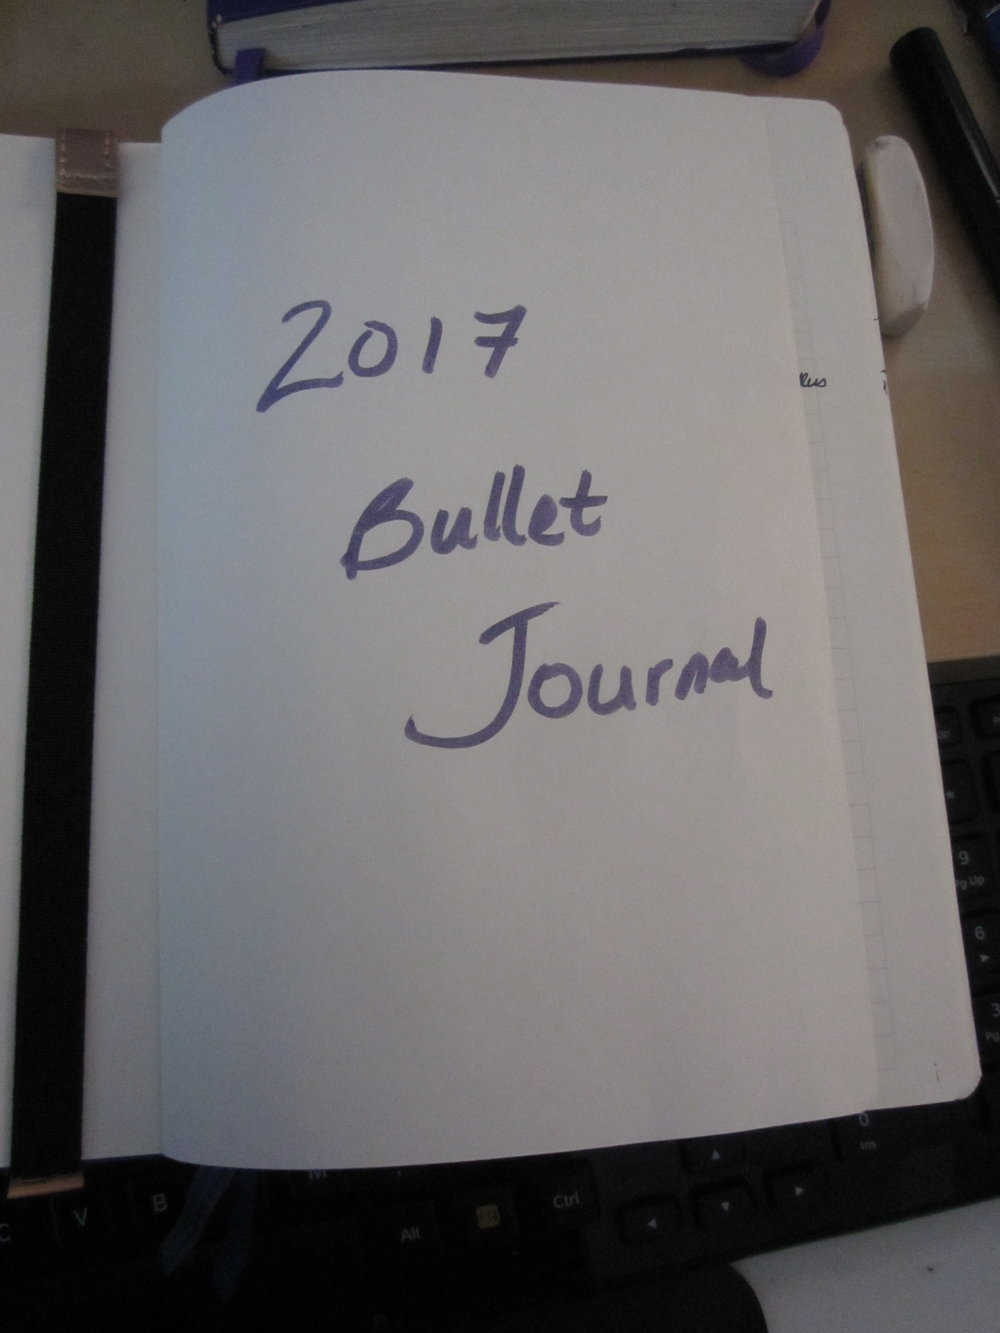 My Bullet Journal Cover Page so far. It's a start. Photo: R-M Arca.